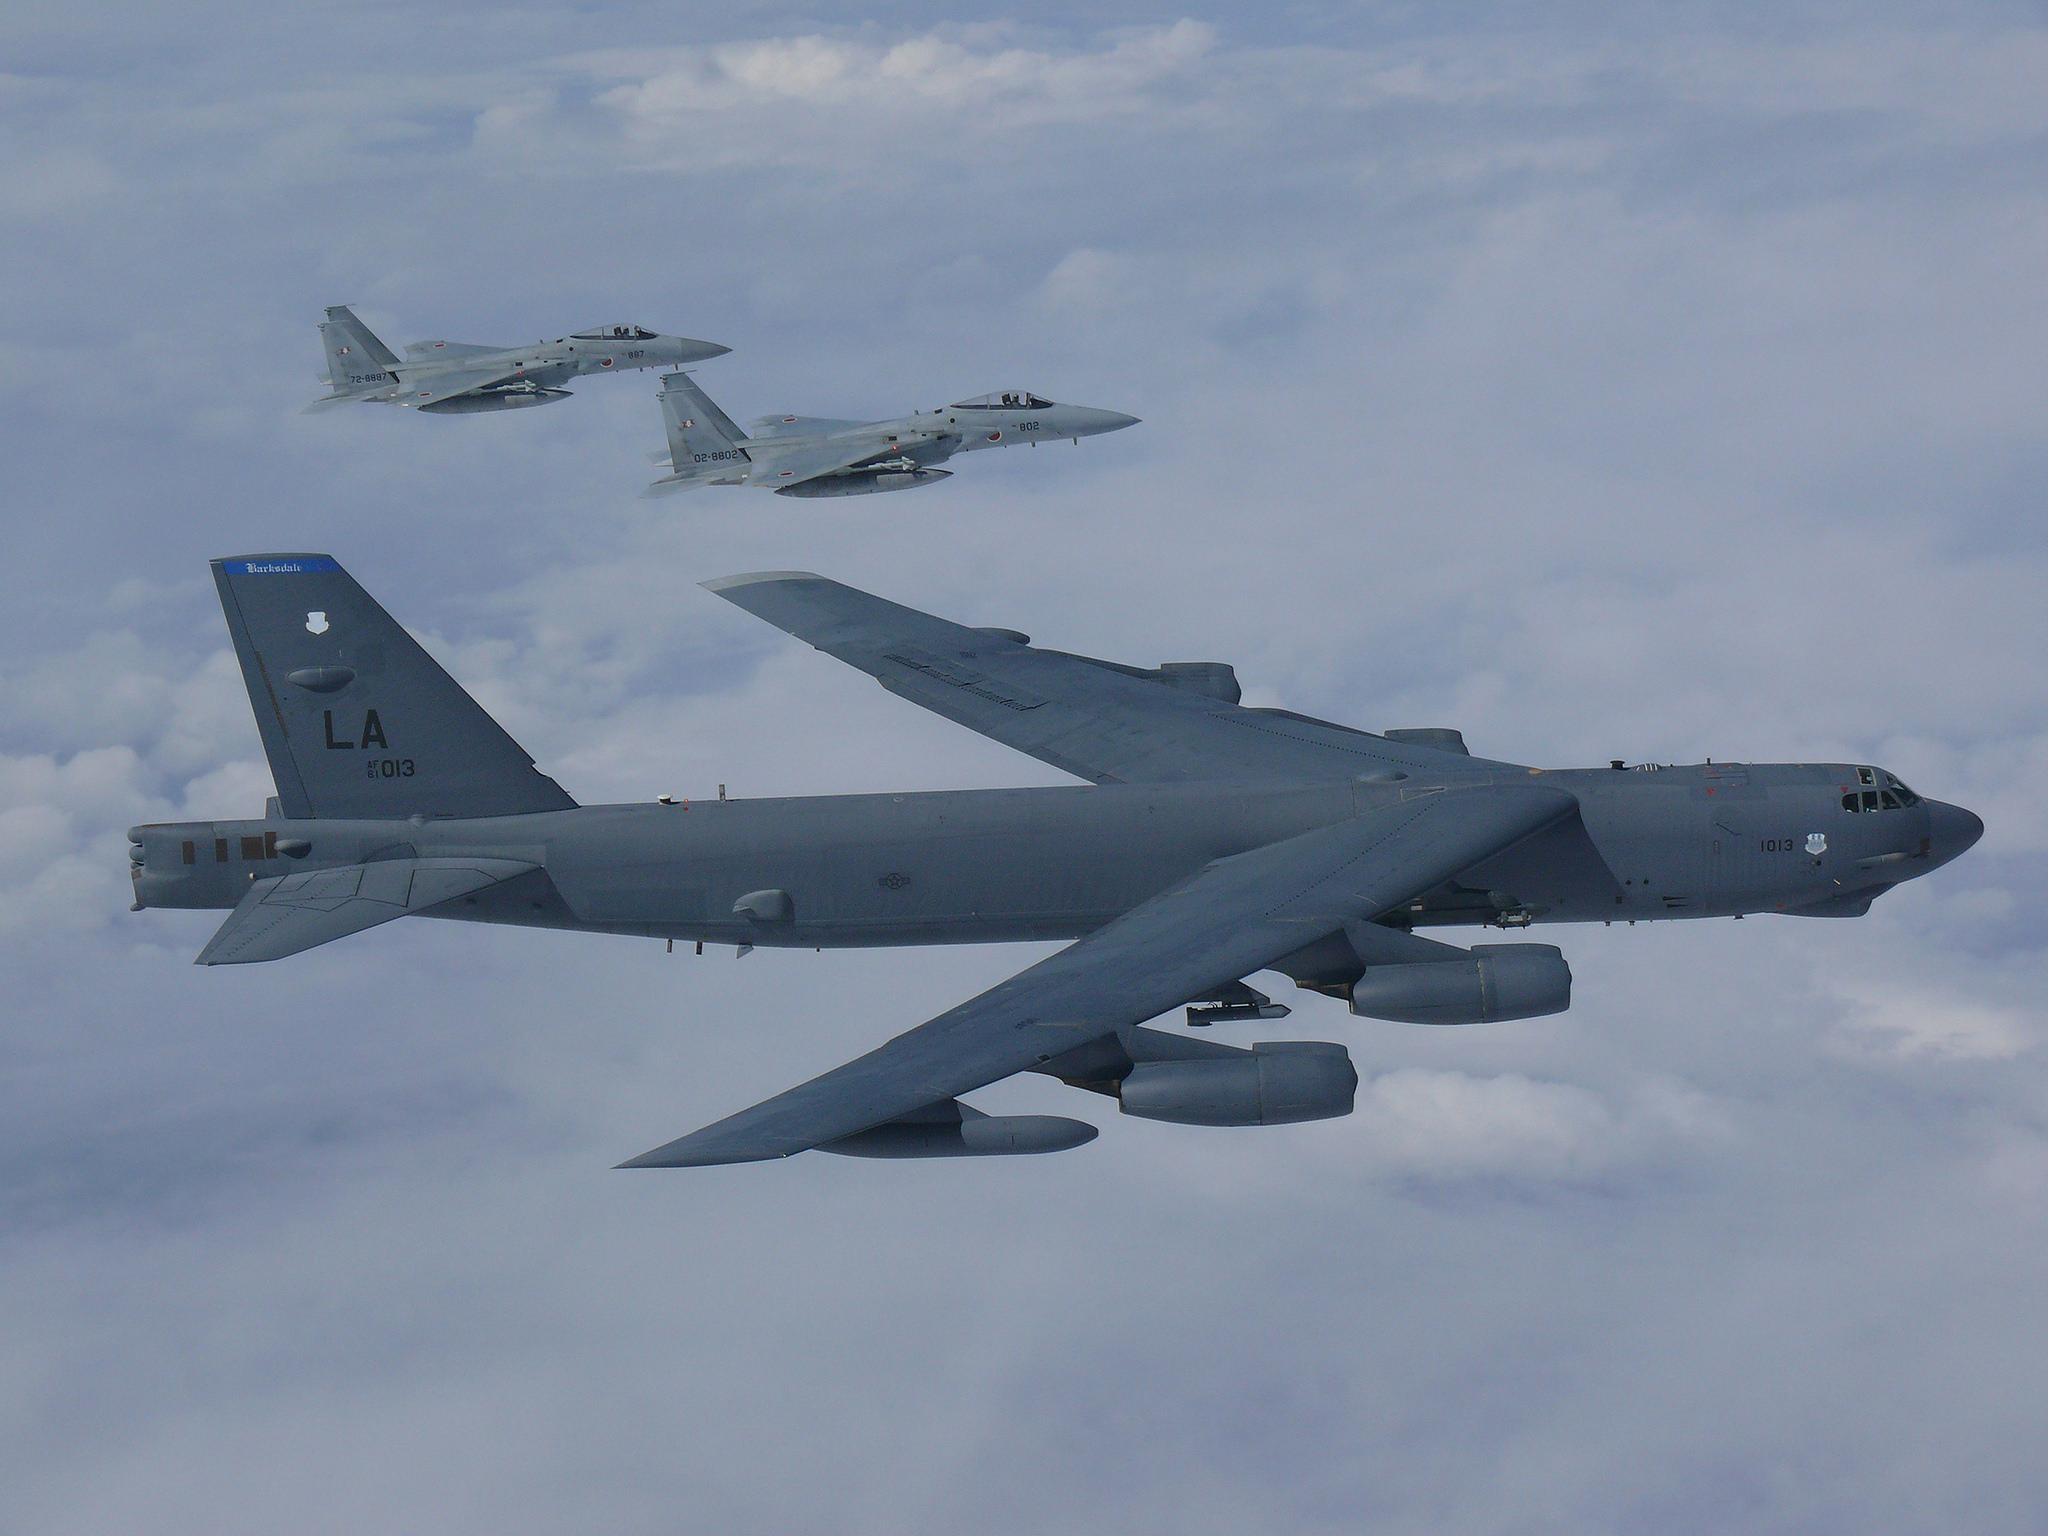 A U.S. Air Force B-52H Stratofortress bomber and two Koku Jieitai (Japan Air Self-Defense Force) F-15 fighters execute a routine bilateral training mission on Sept. 26, 2018, over the East China Sea and the Sea of Japan. This mission was flown in support of U.S. Indo-Pacific Command's continuous bomber presence operations, which are key to improving combined interoperability, tactical skills and relationships. These missions are consistent with international law and the United States' long-standing and well-known freedom of navigation policies. (USINDOPACOM)